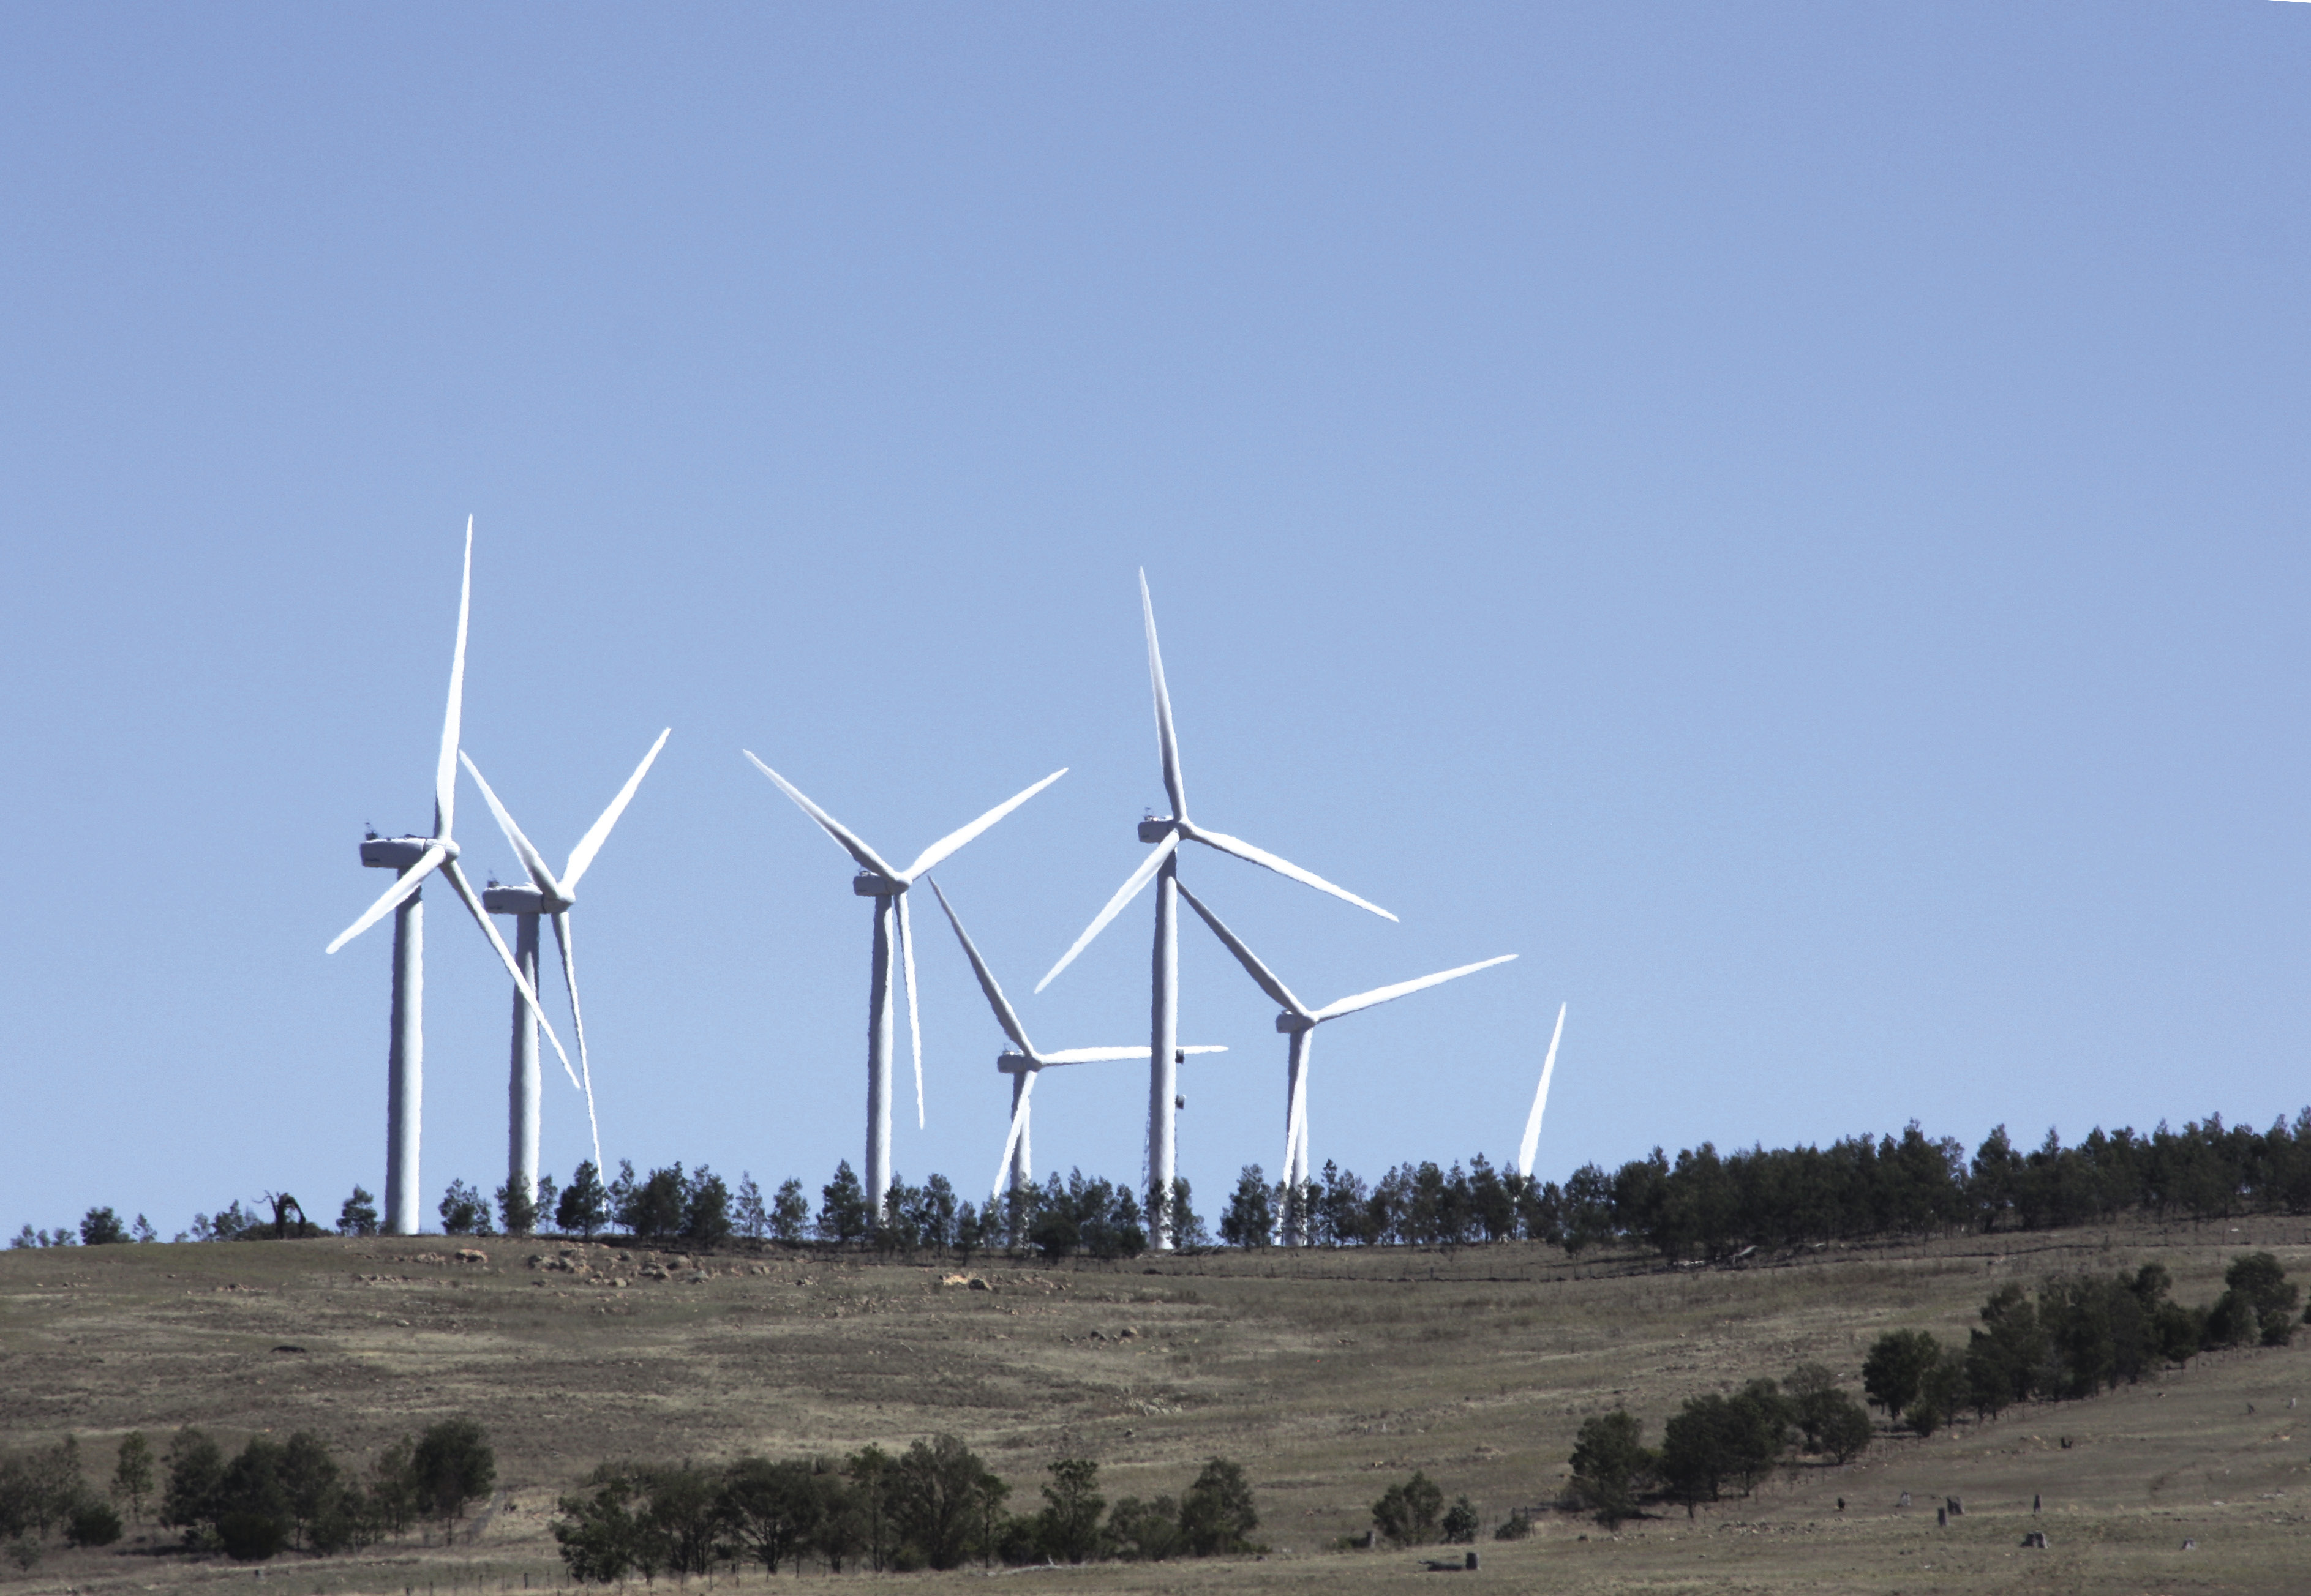 Image of several wind turbines with a paddock sloping up to a treed ridge on which the wind turbines stand